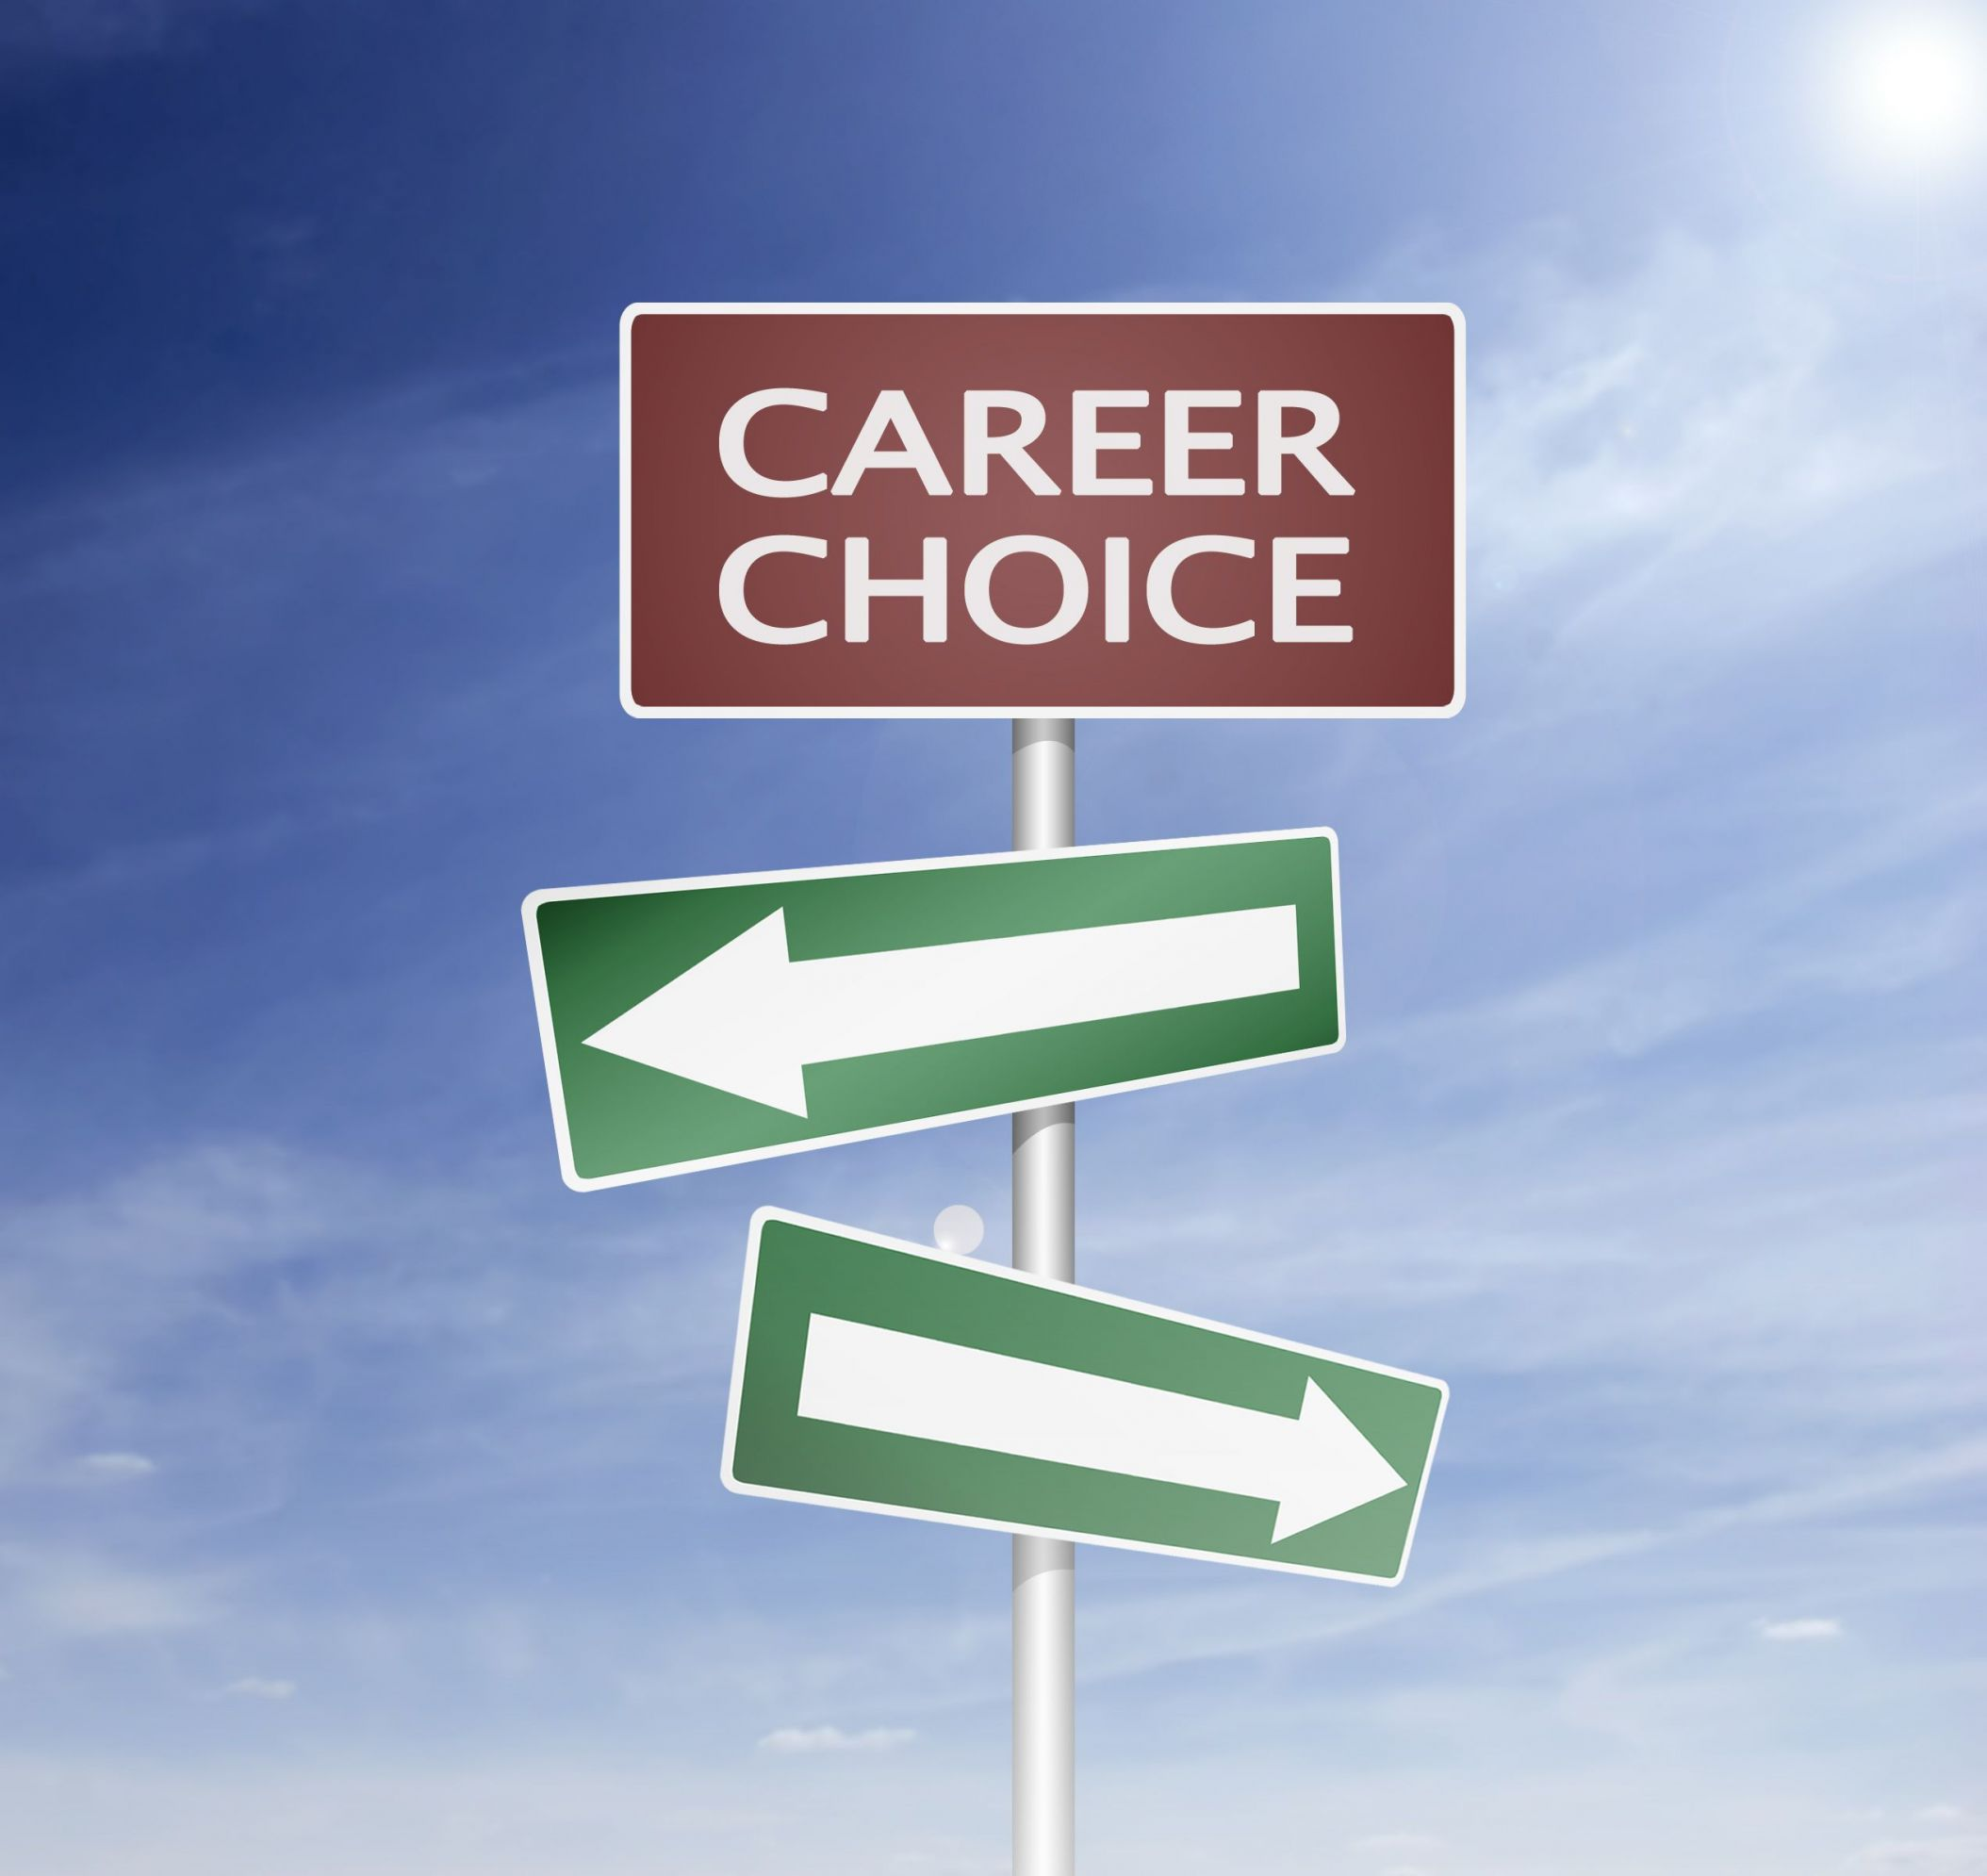 Risk v/s Reward : Choosing the right Career path